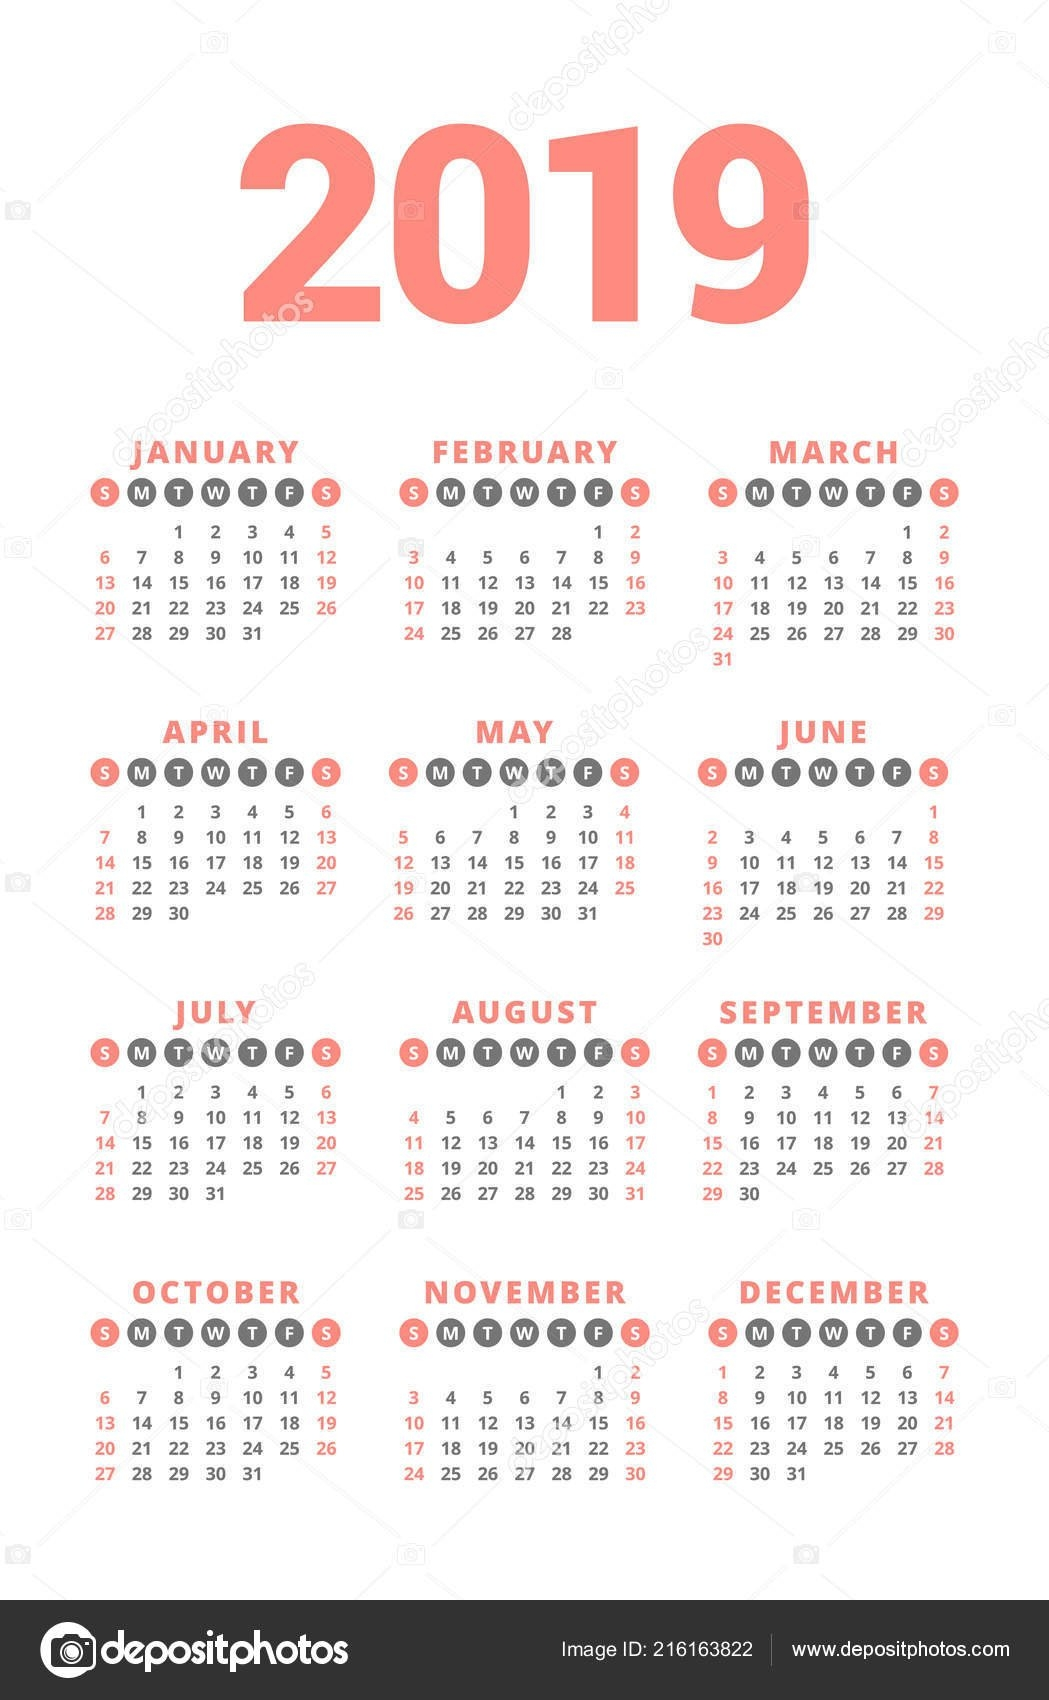 Calendar 2019 Year White Background Week Starts Sunday Columns Rows 4 Column Calendar 2019